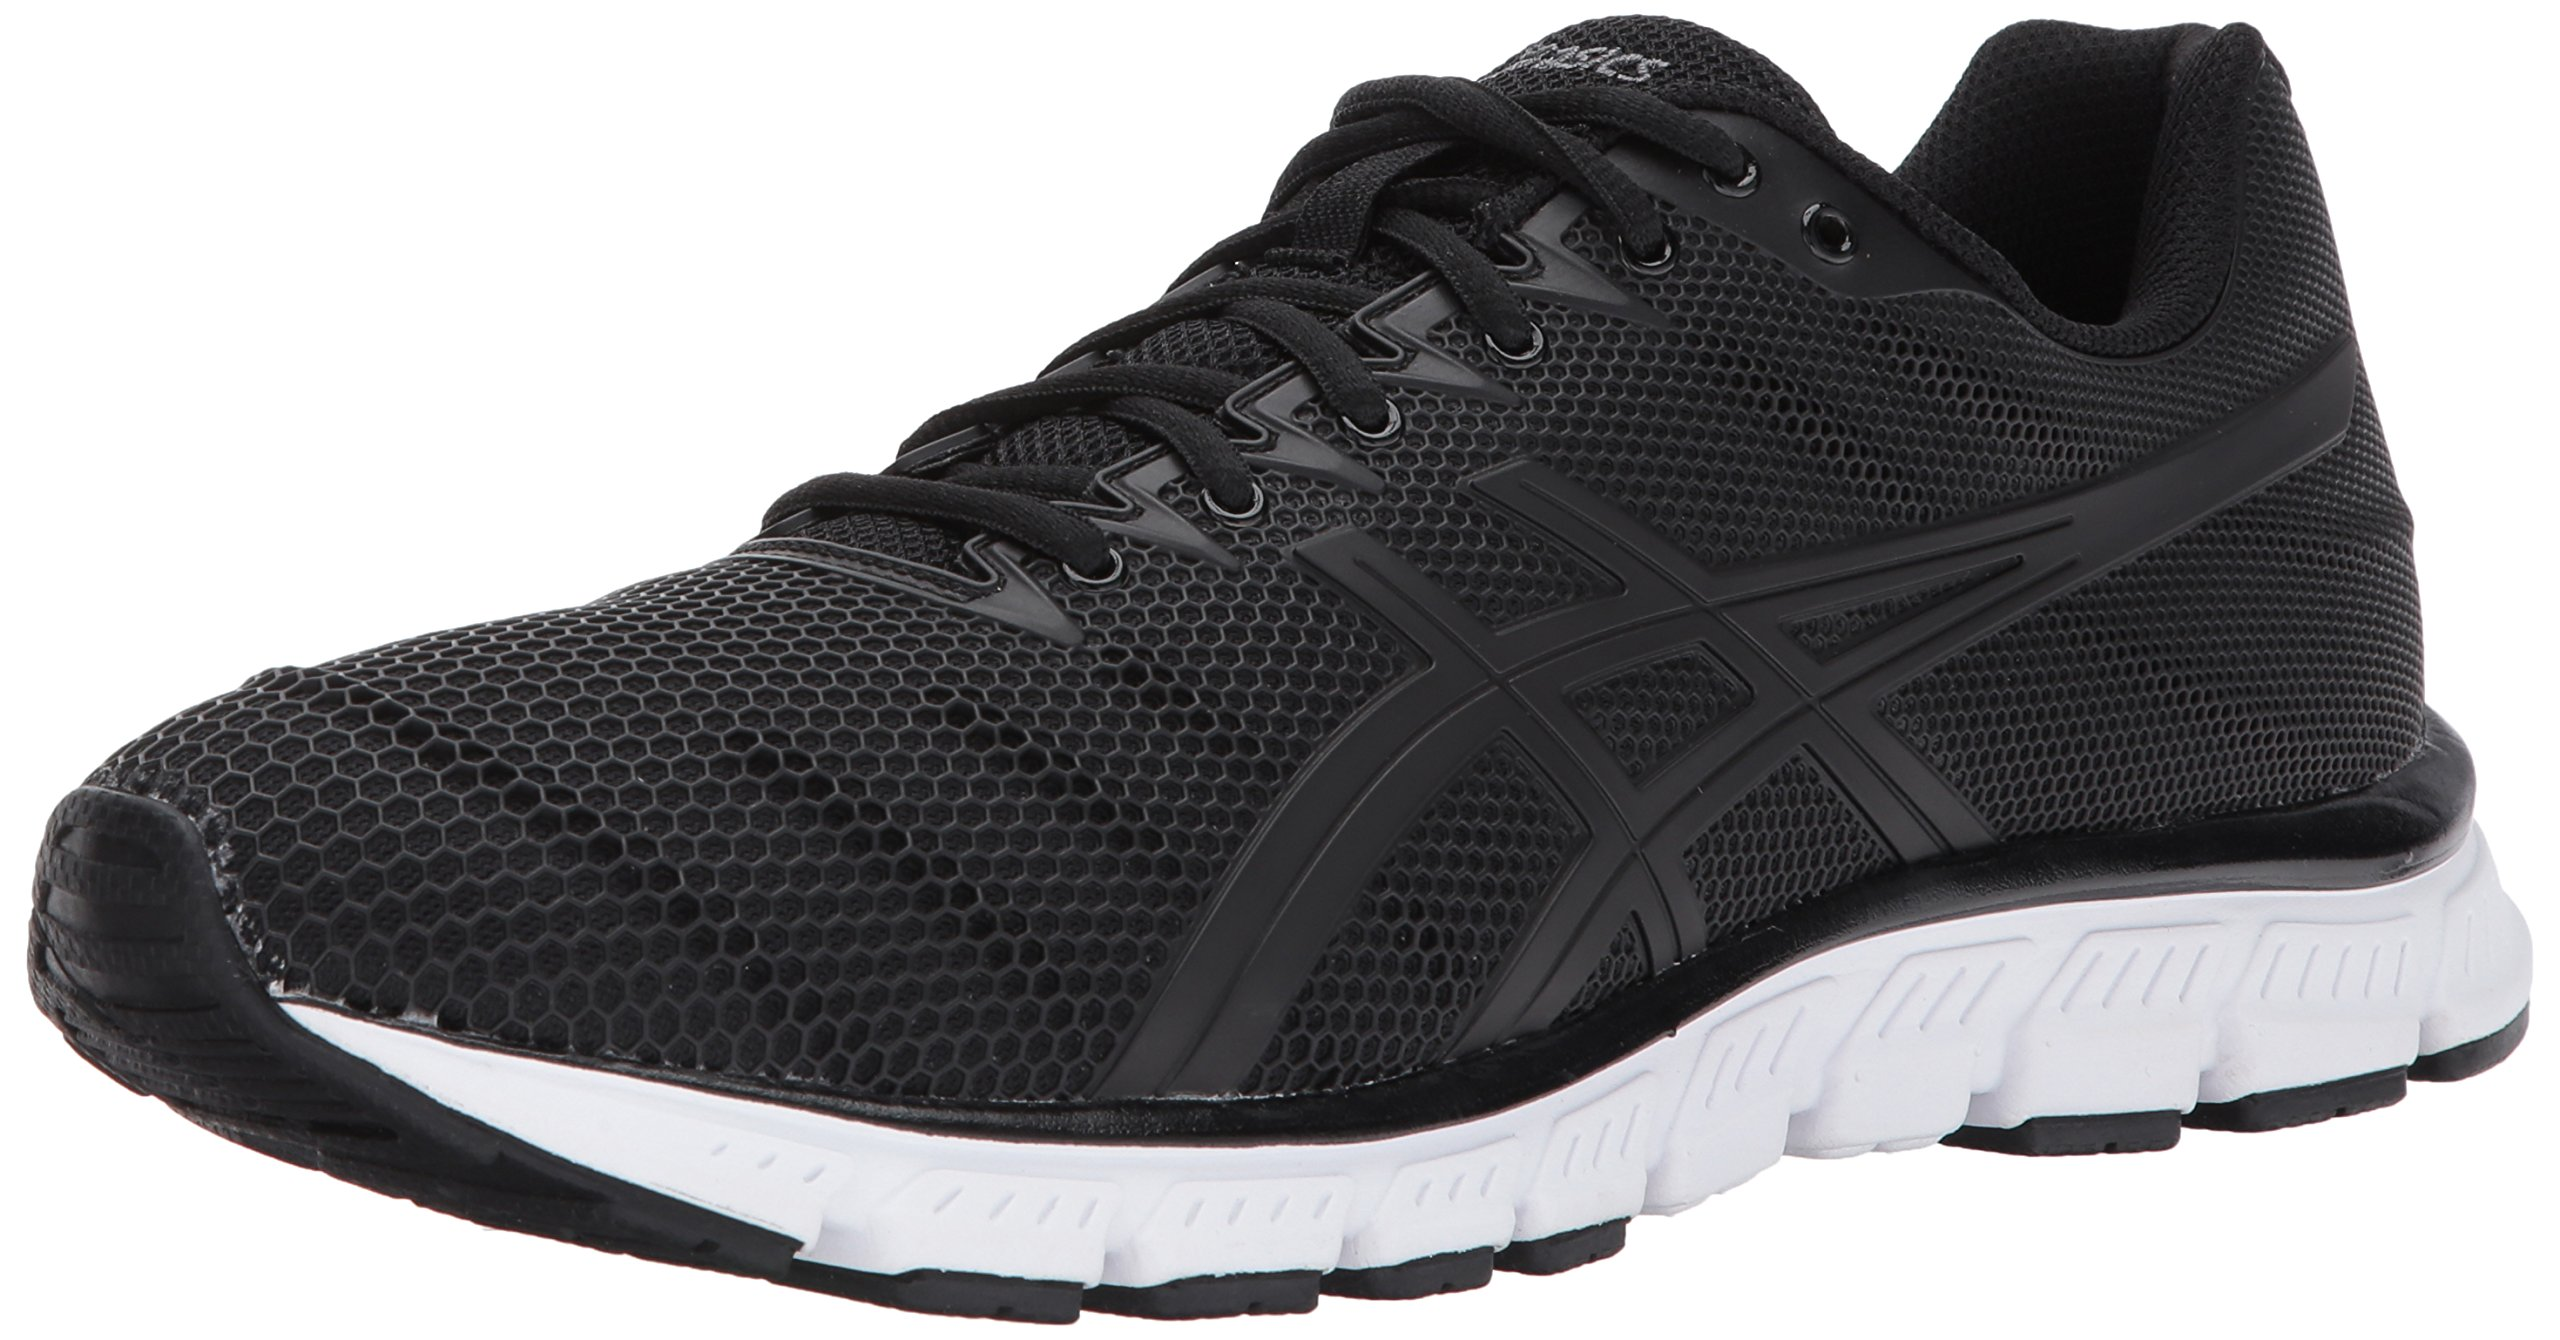 ASICS Men's JB Elite TR Wrestling-Shoes, Black/Black, 12 Medium US